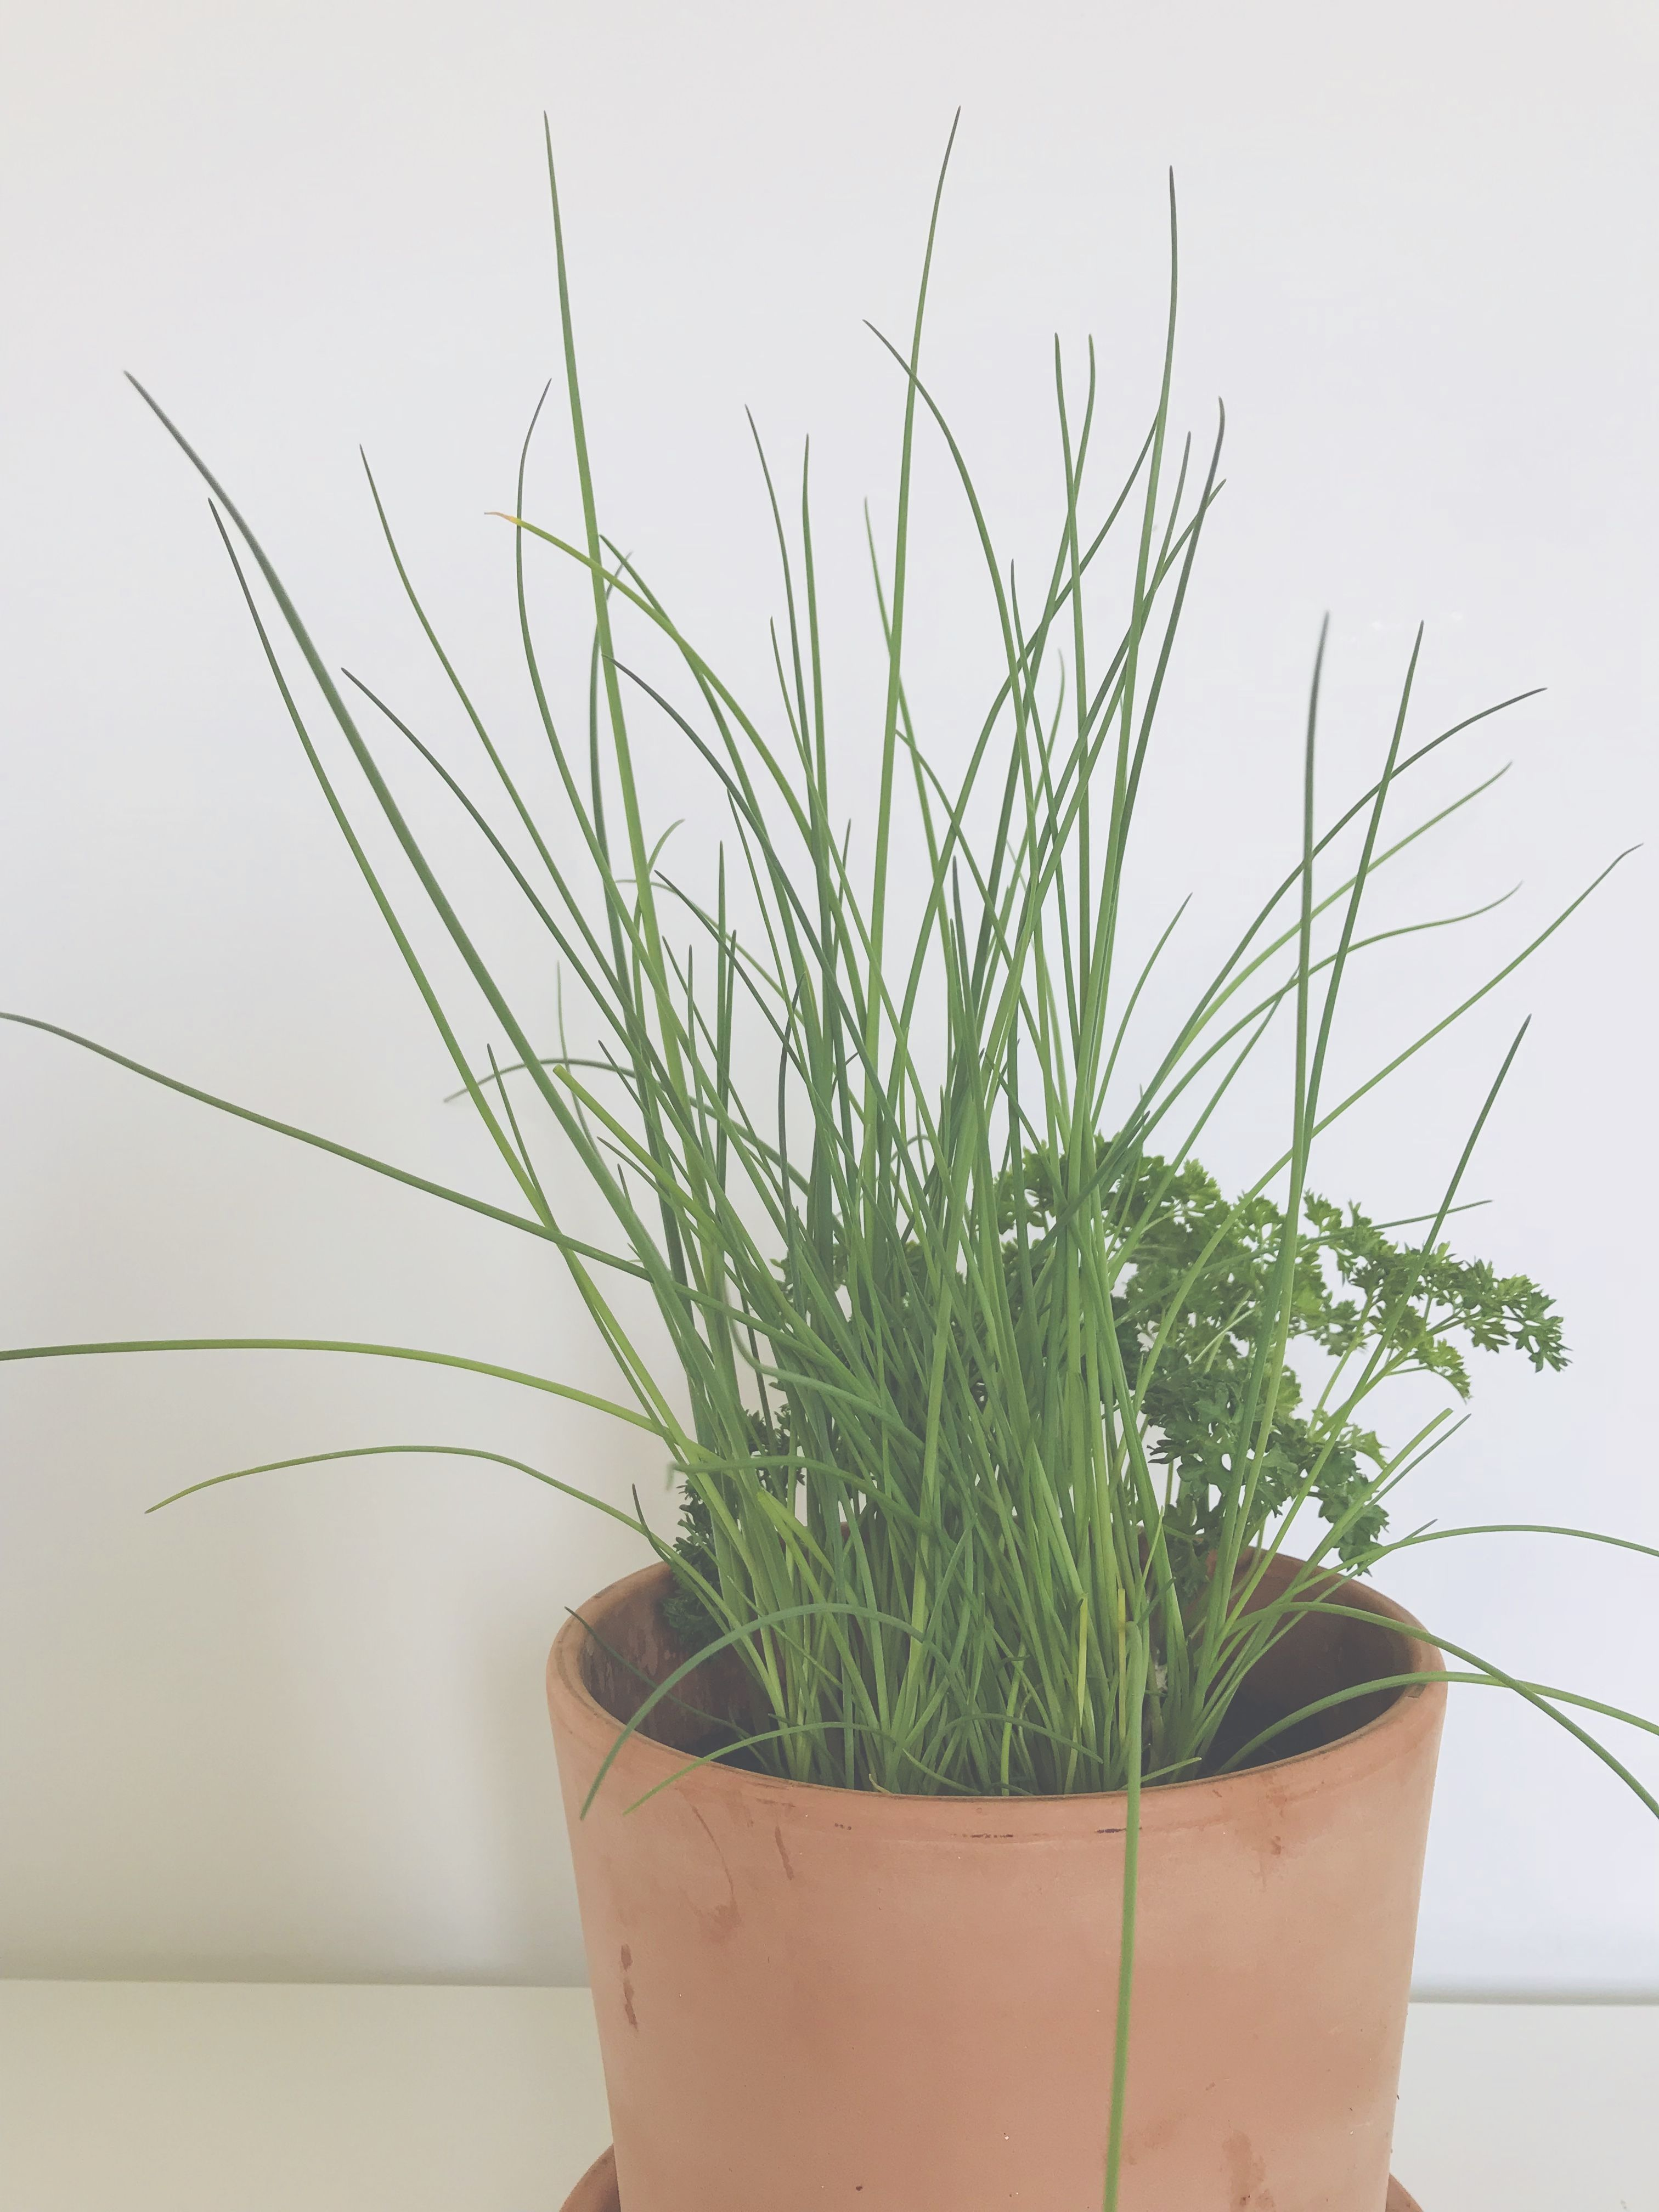 Self Herb Preserve Your Chives For Winter Vegan Cuisine